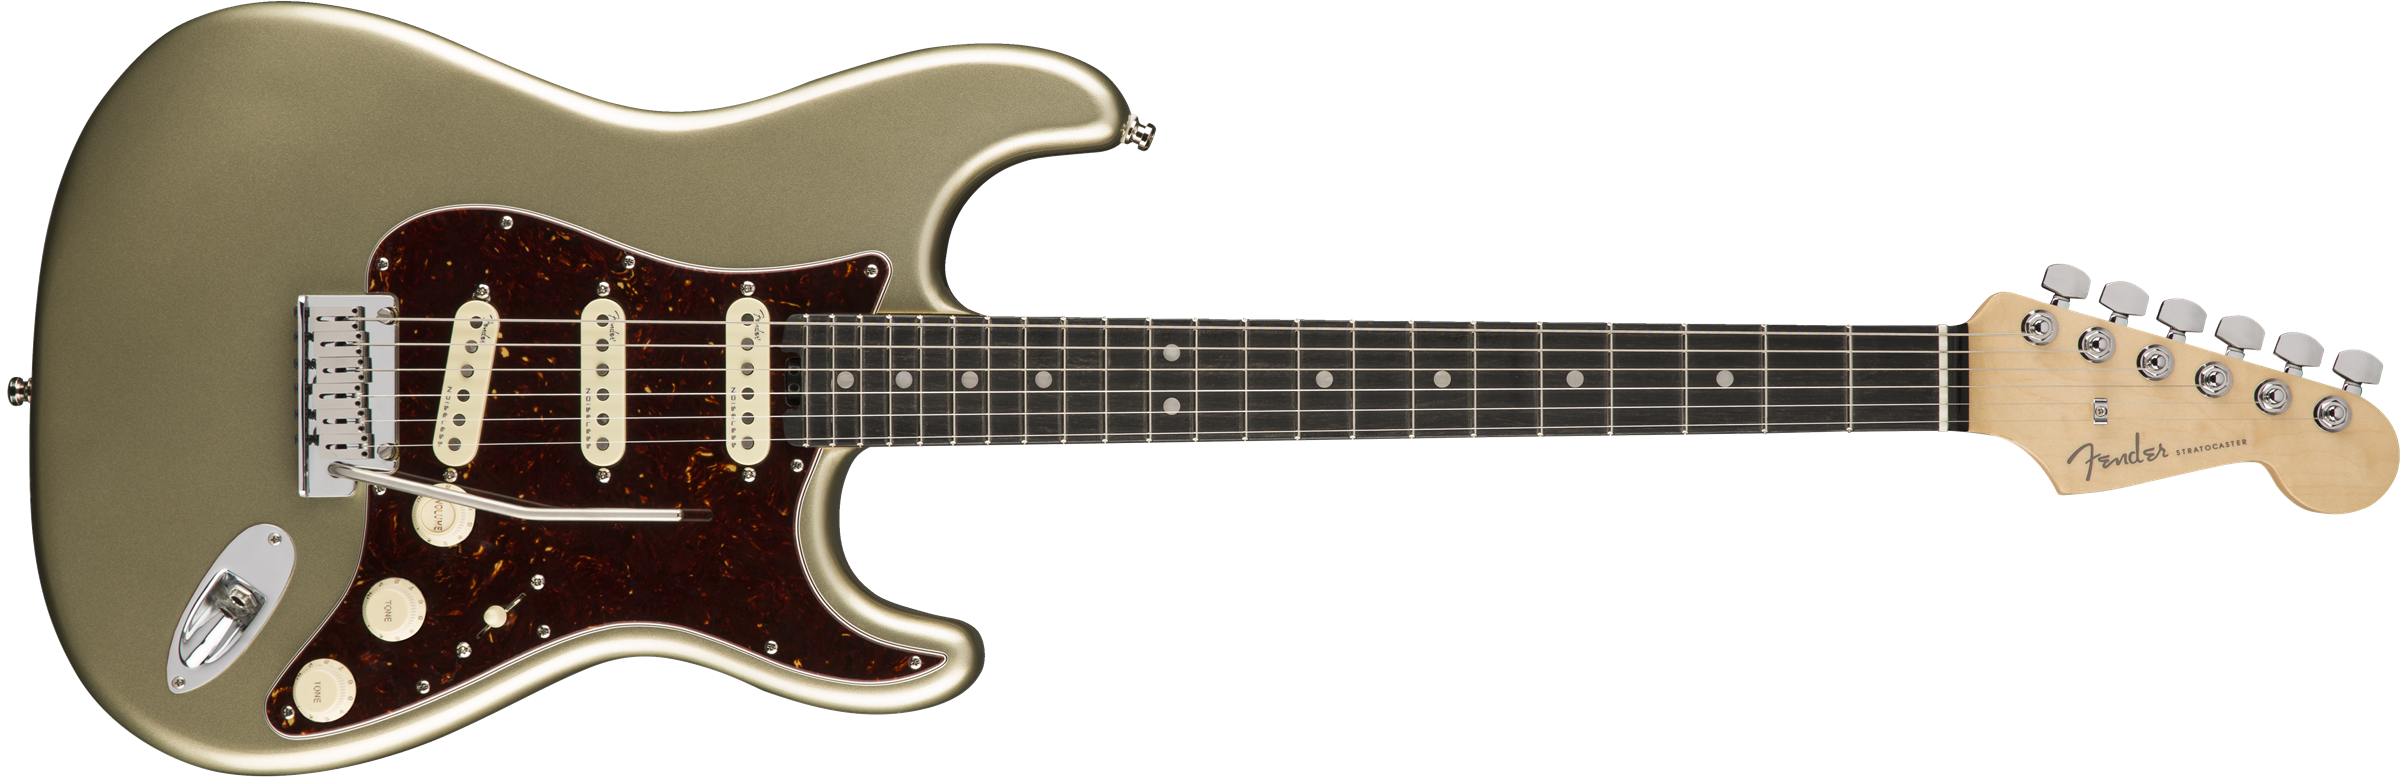 FENDER AM ELITE AMERICAN STRATO EB CHAMP - 0114001774